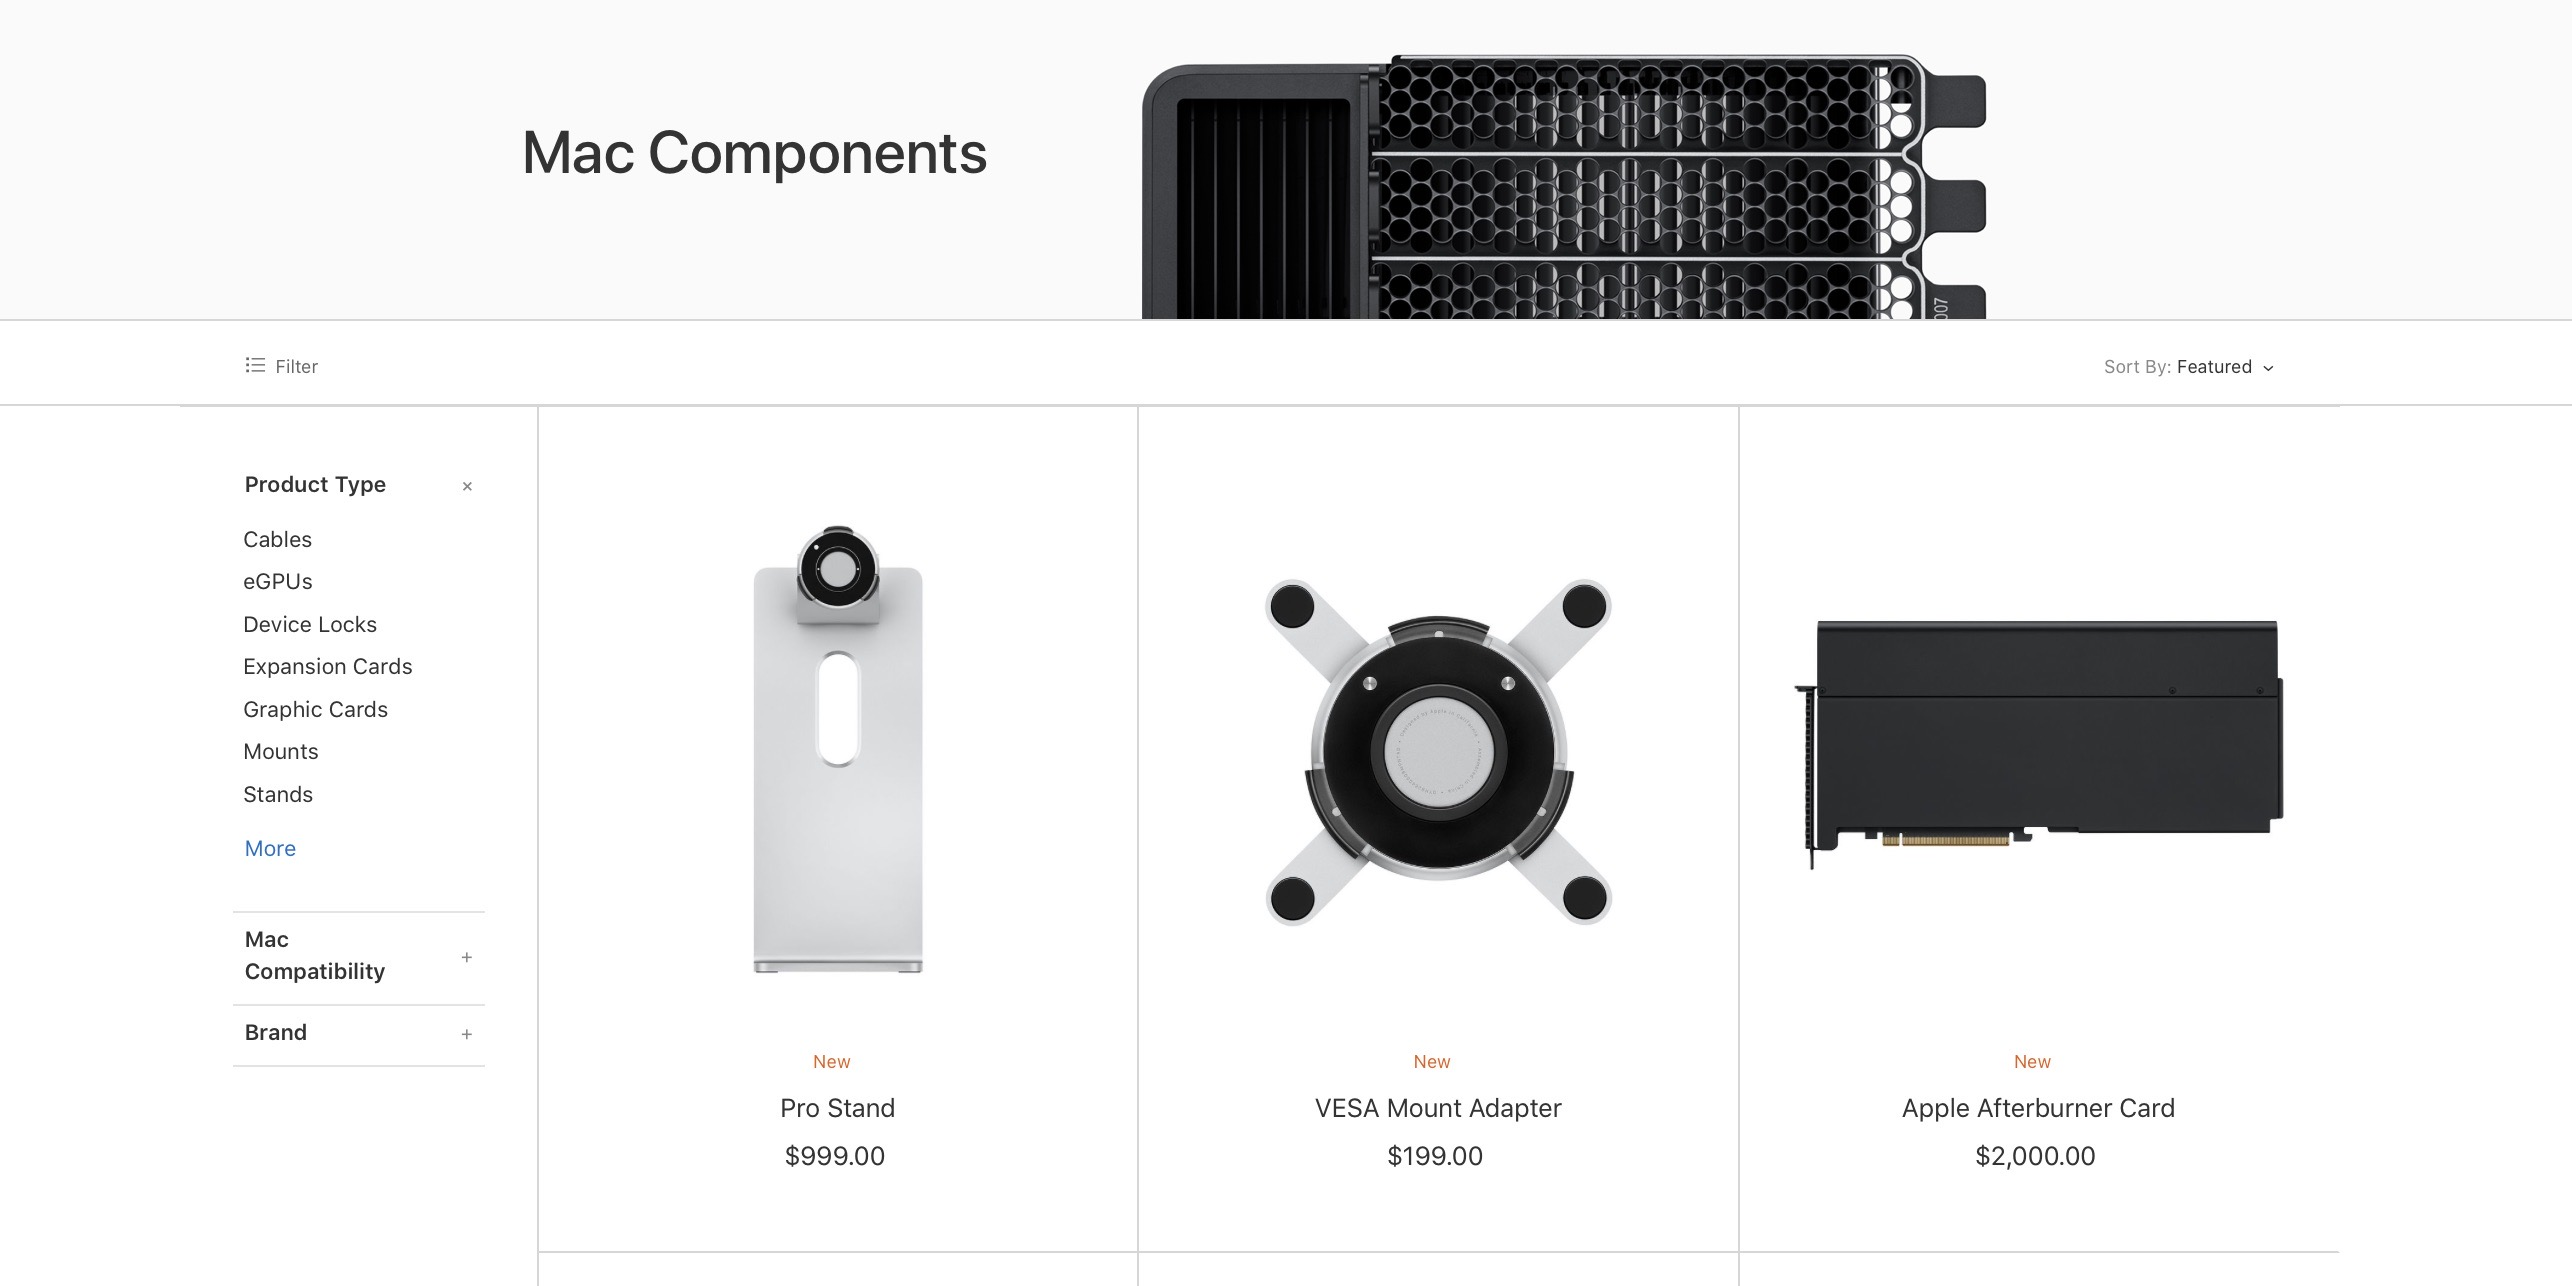 Mac Pro Accessories Details And Pricing On Storage And Gpu